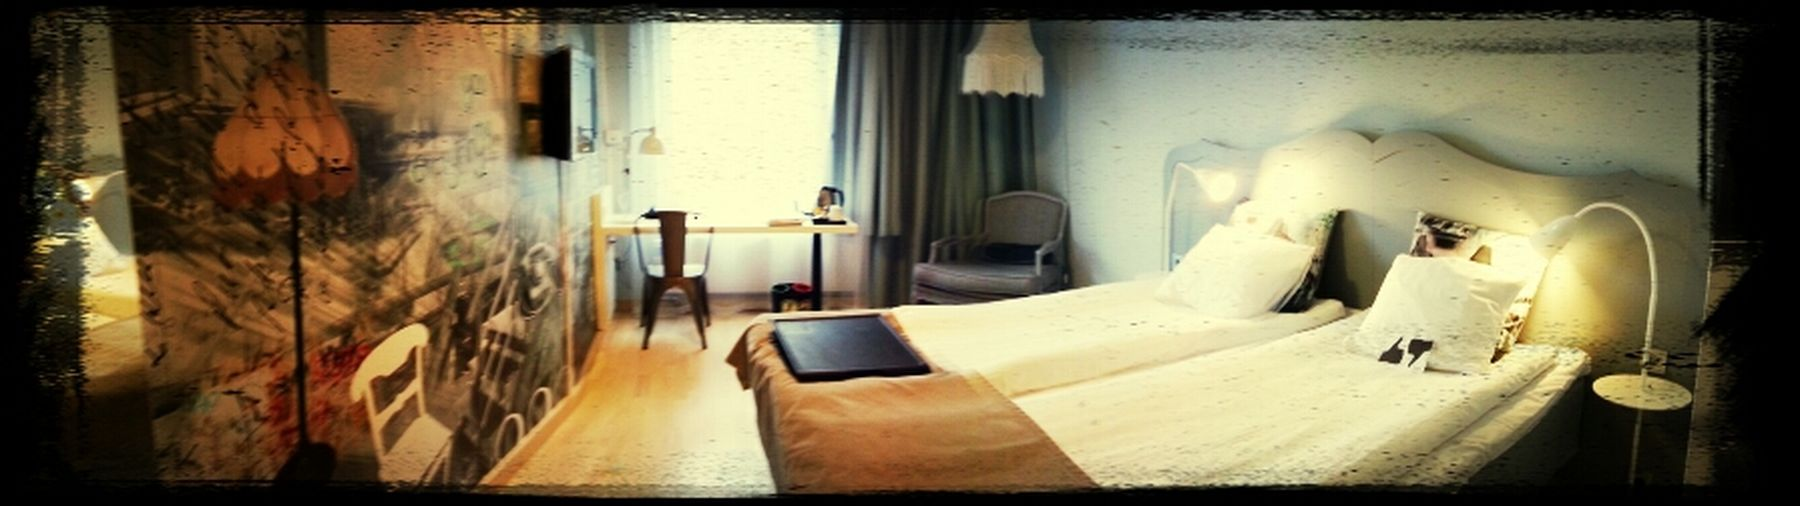 Soon I will be working more in this place ;-) Hotel Room Scandic Malmen